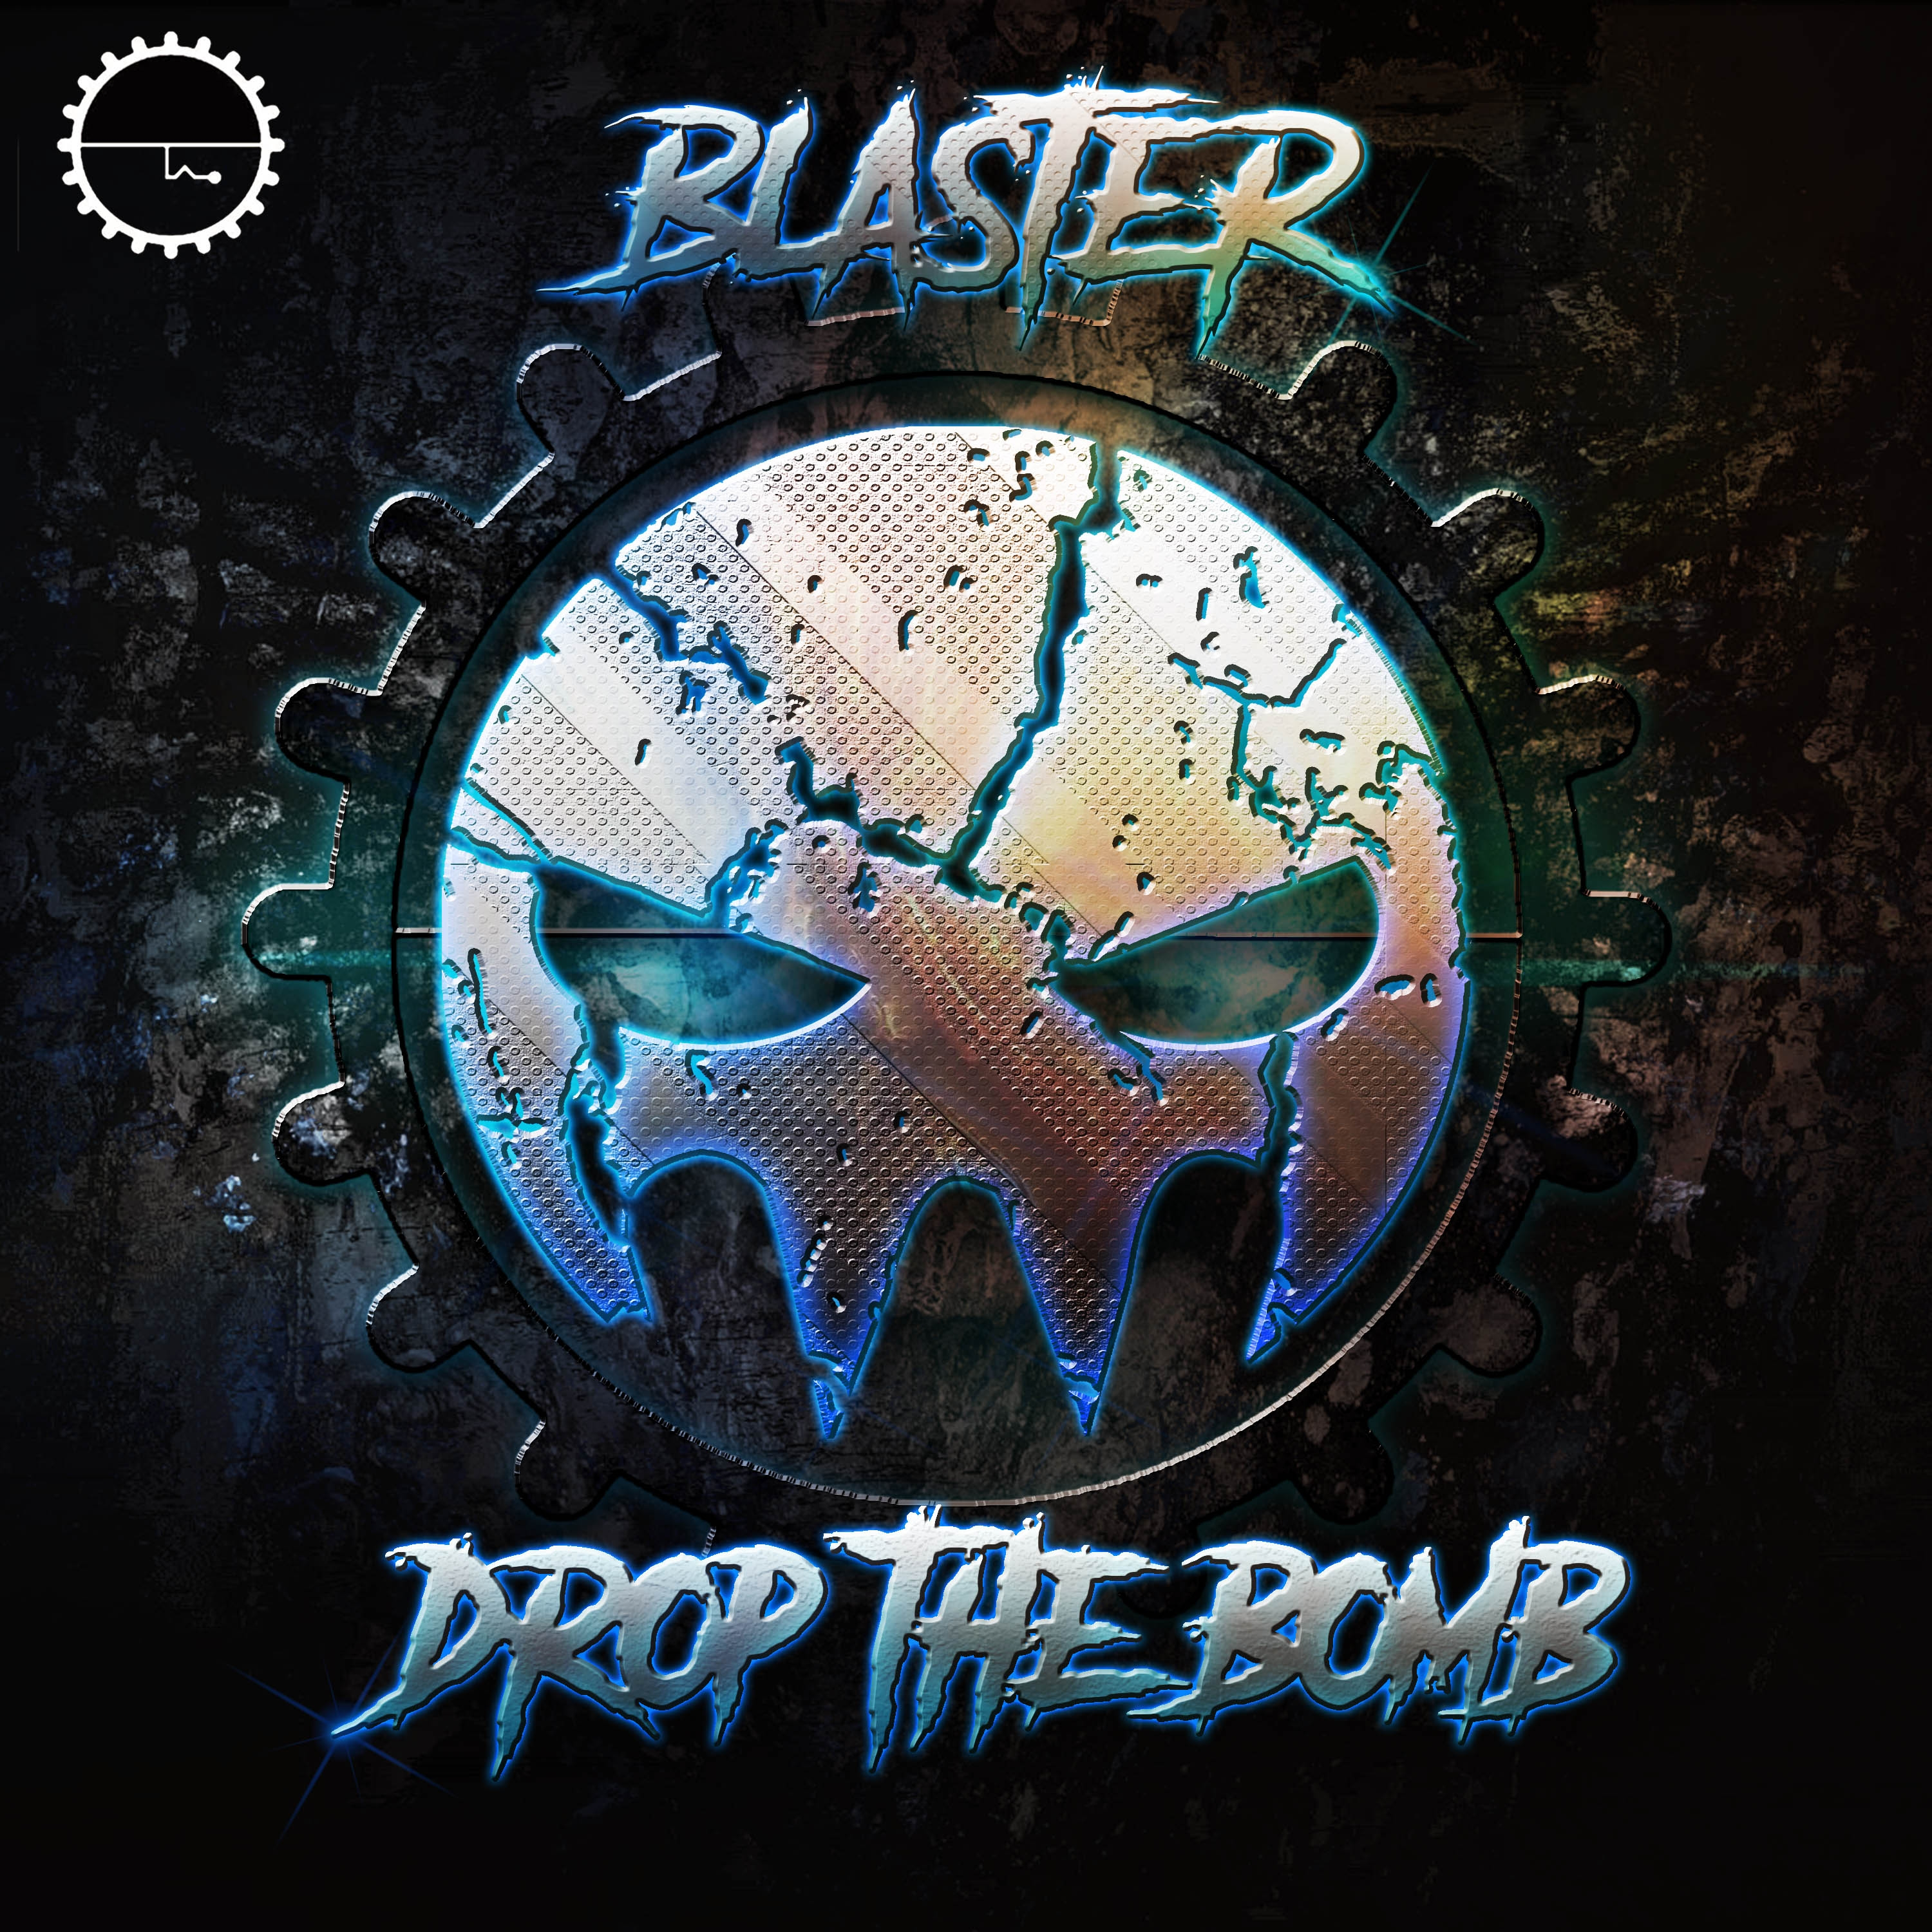 Blaster - Drop the Bomb - MP3 and WAV downloads at Hardtunes